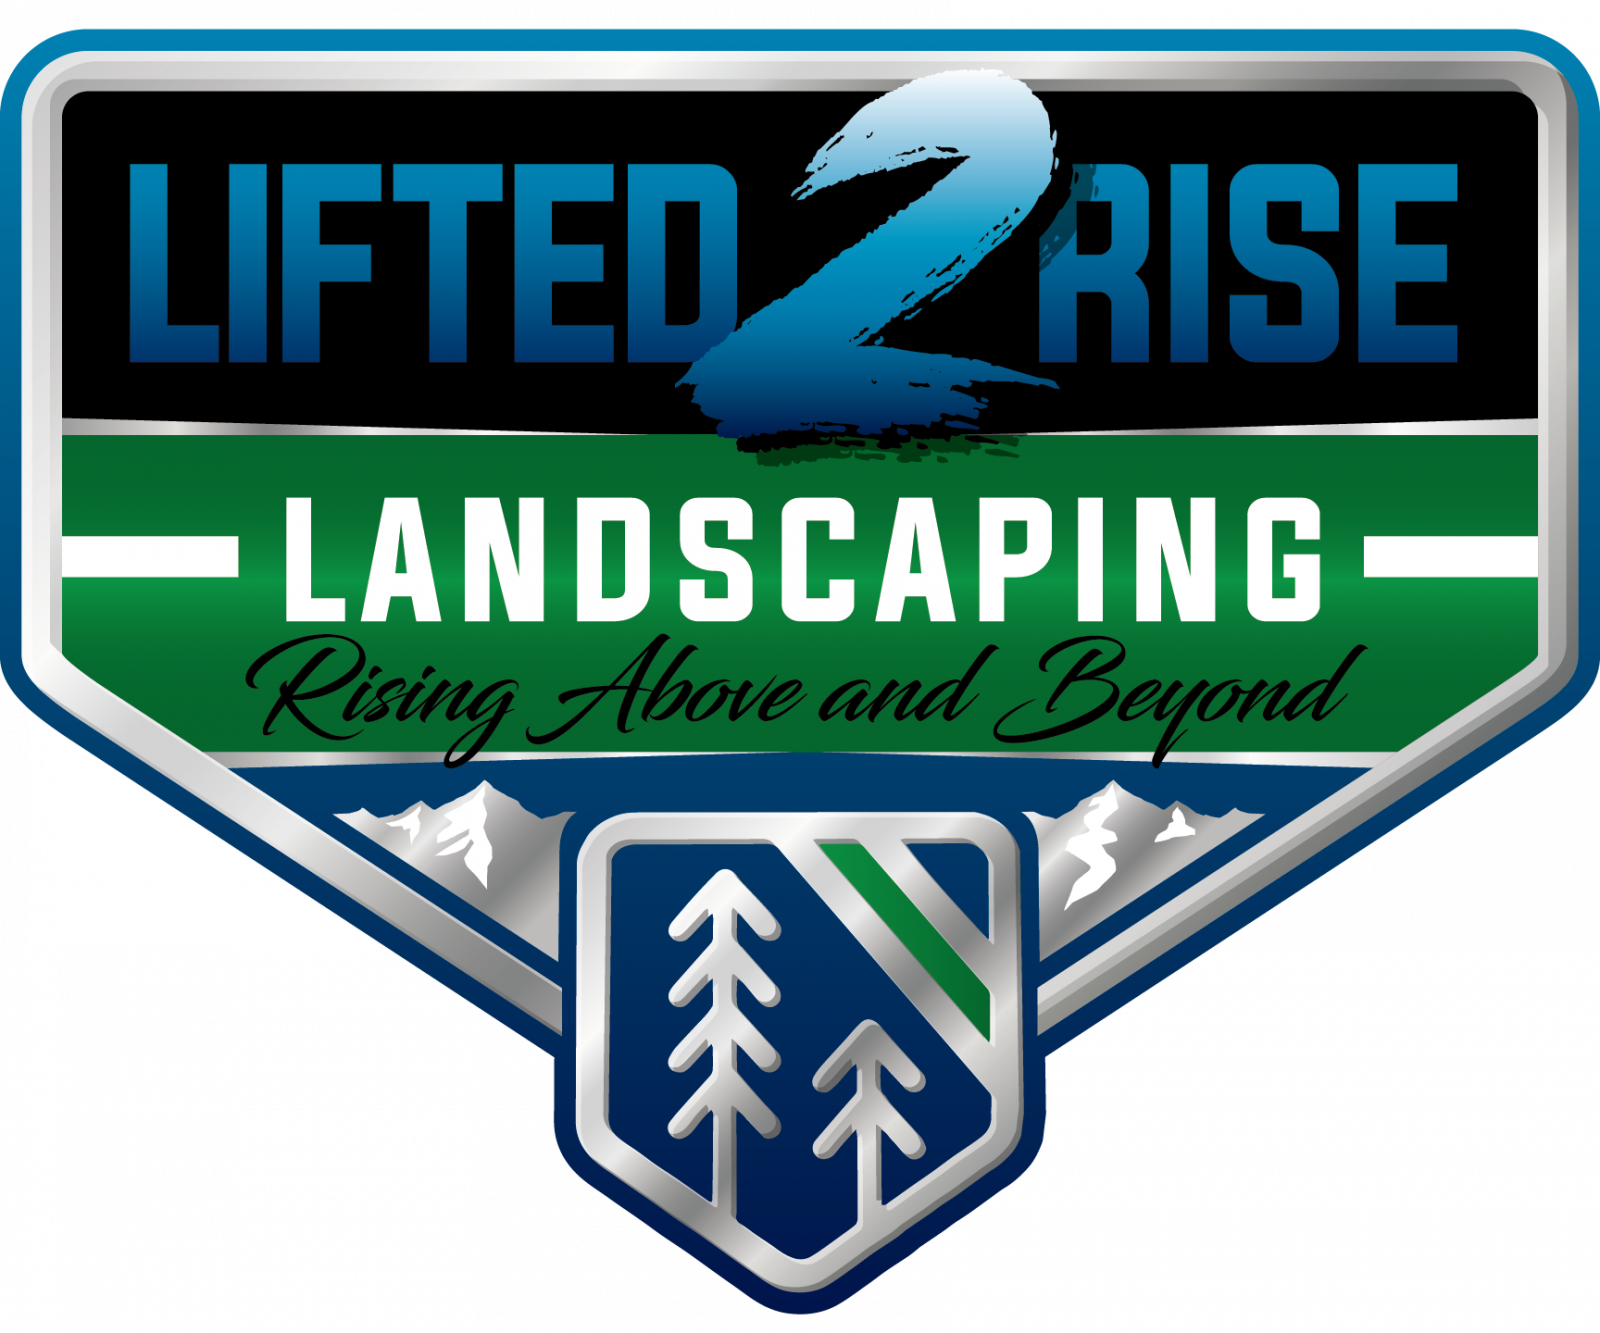 LIfted 2 Rise - LX - Car Decals-01(1).png